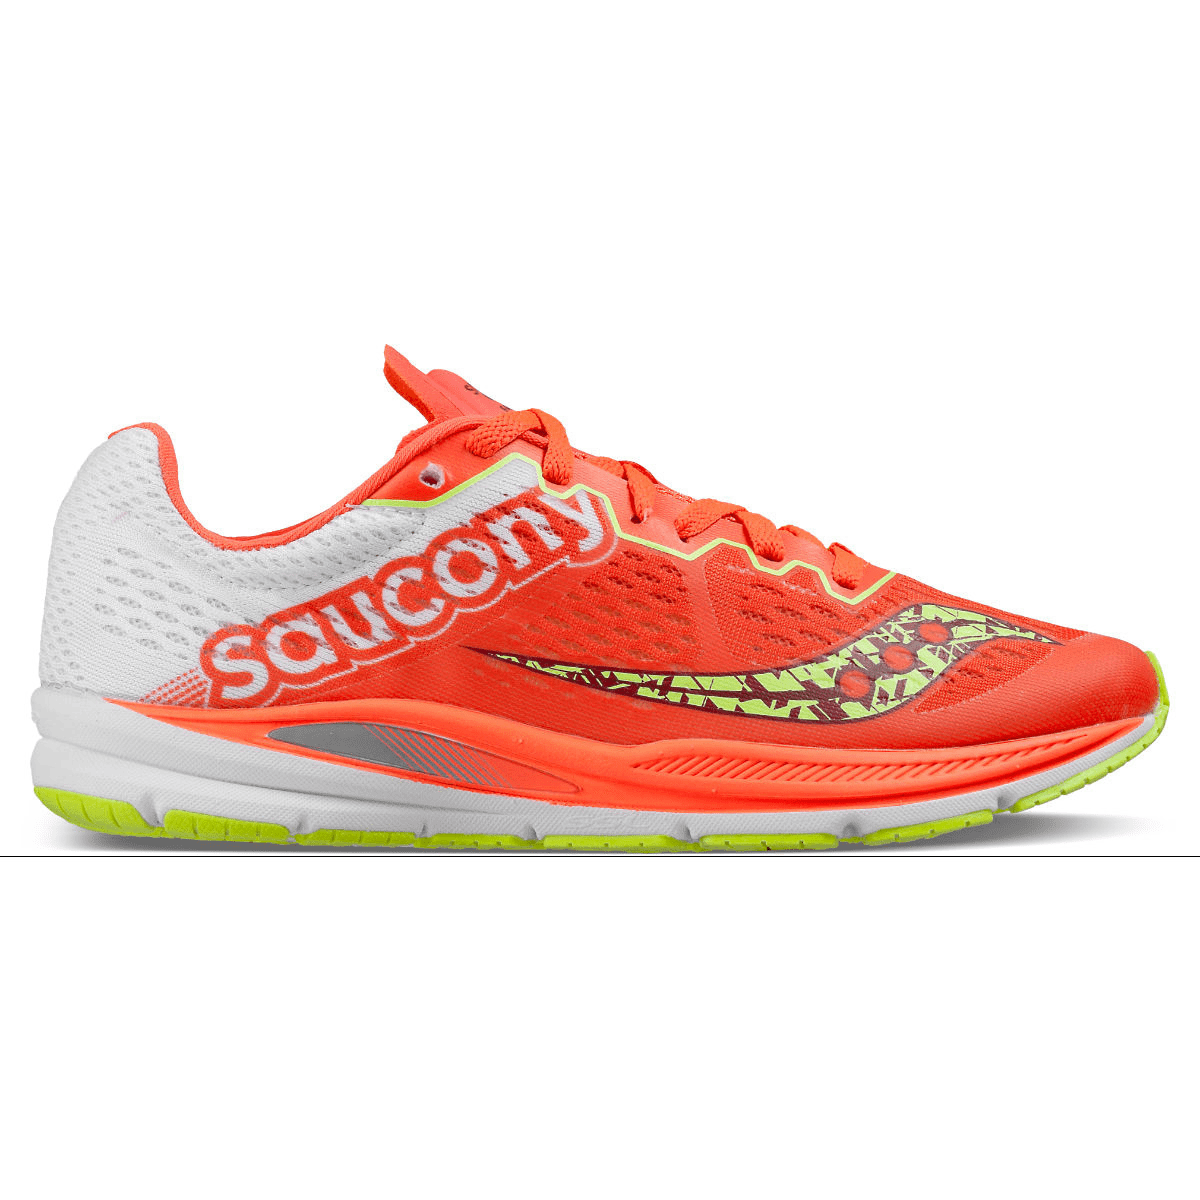 New in Box Femme Saucony FASTSWITCH 8 Corail Citron S19032-1 chaussures De Course Taille 10 M J719